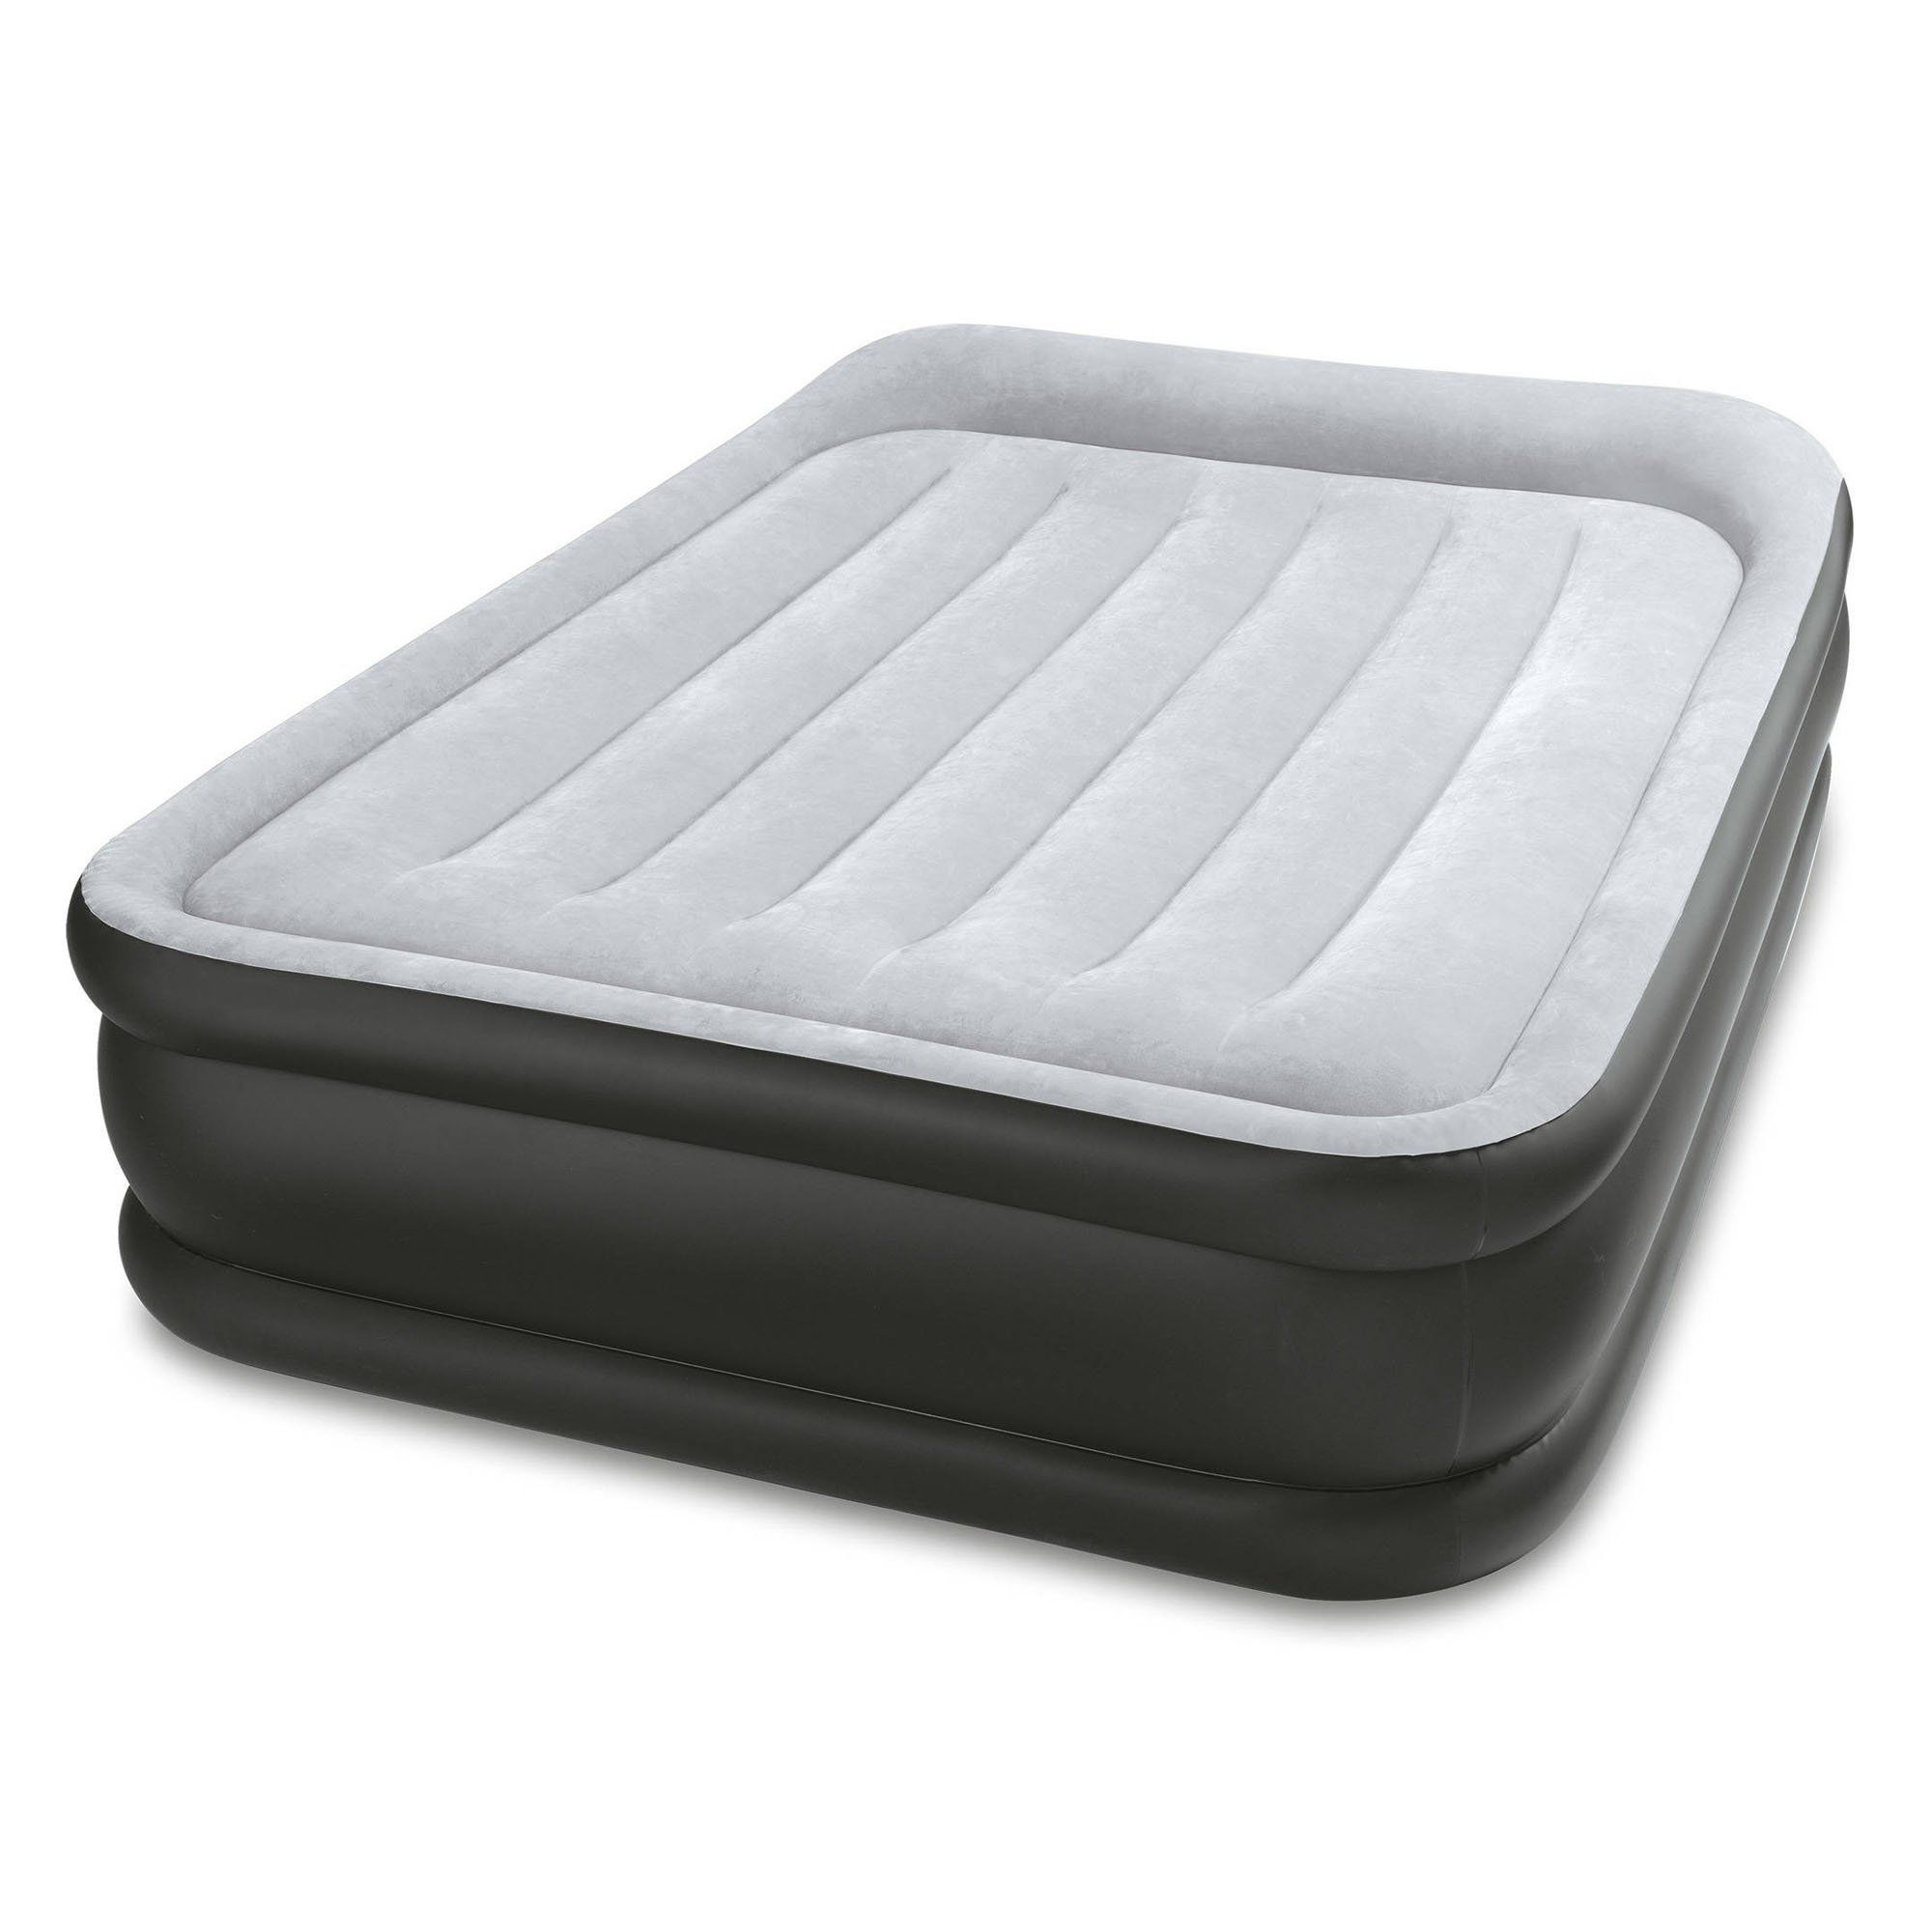 Intex Durabeam Deluxe Pillow Rest Inflatable Air Mattress Air Bed